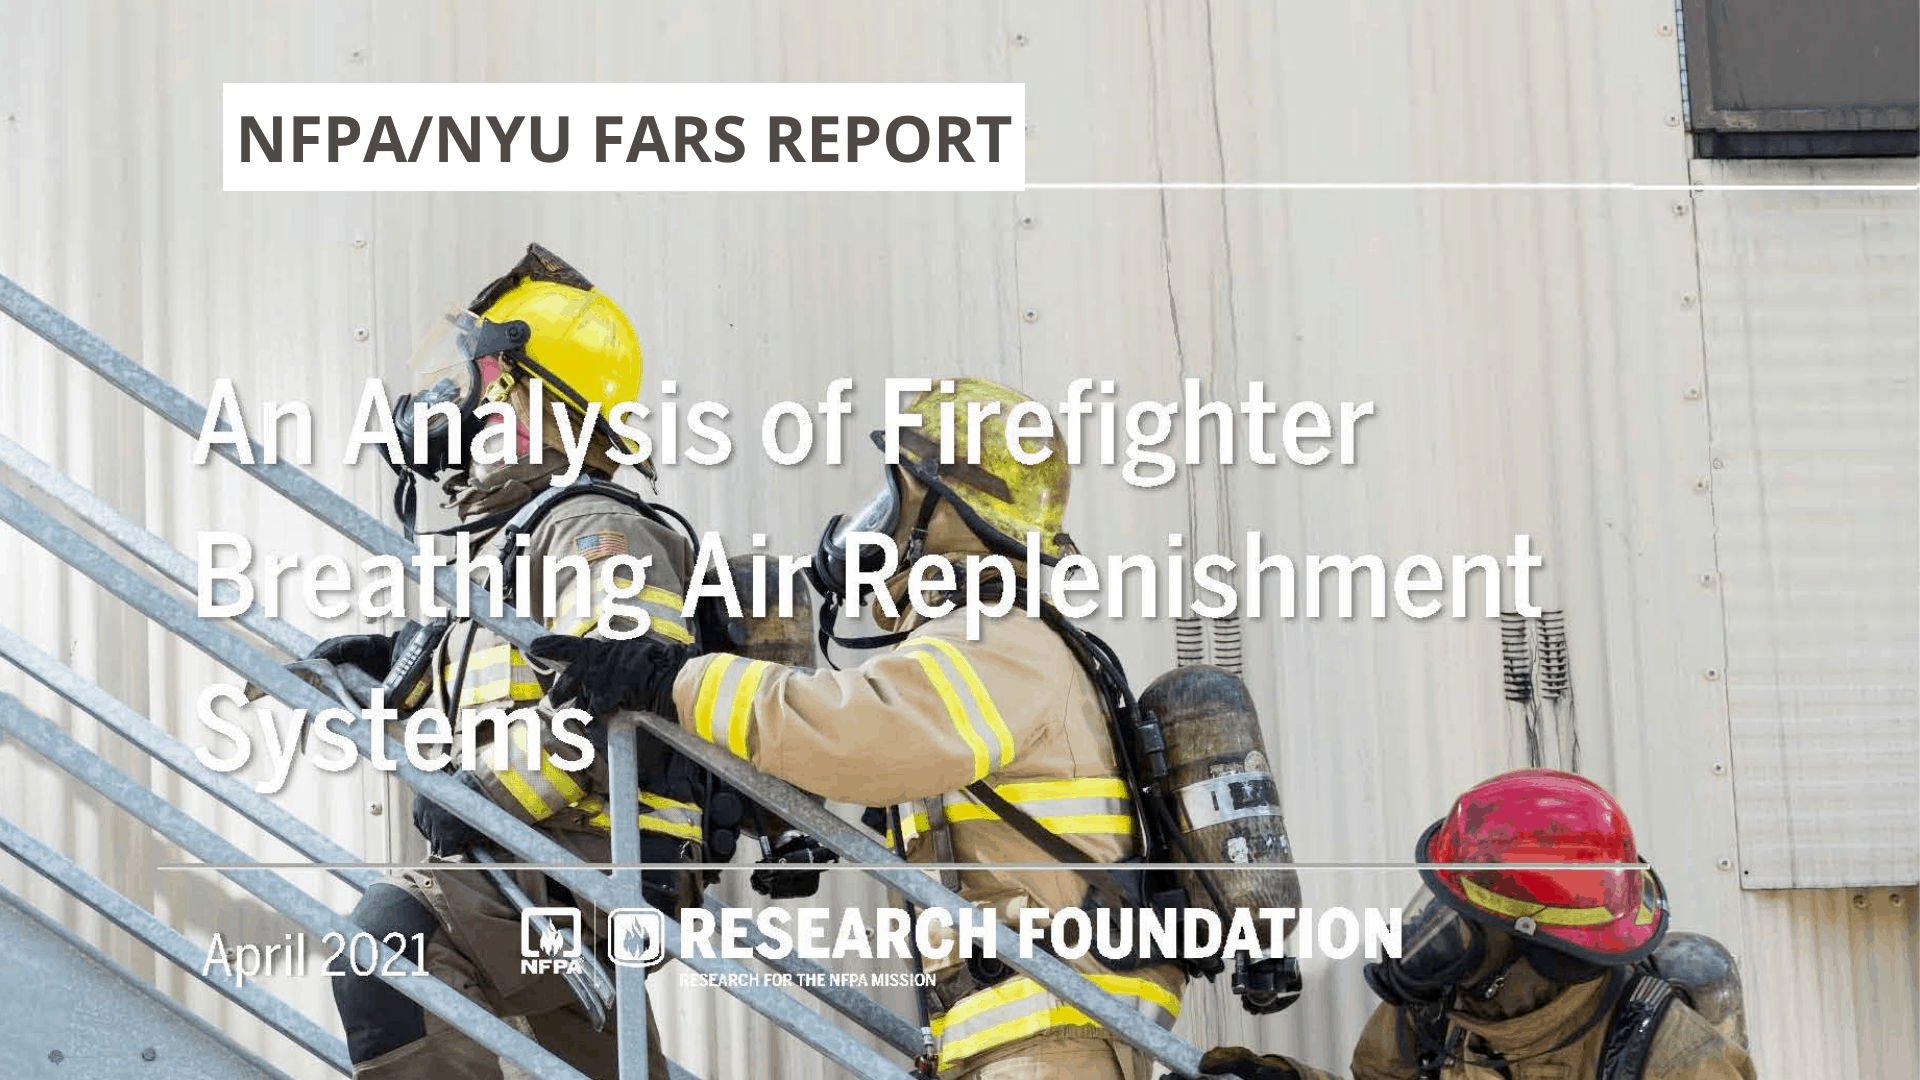 NFPA and NYU FARS Report An Analysis of Firefighter Breathing Air Replenishment Systems